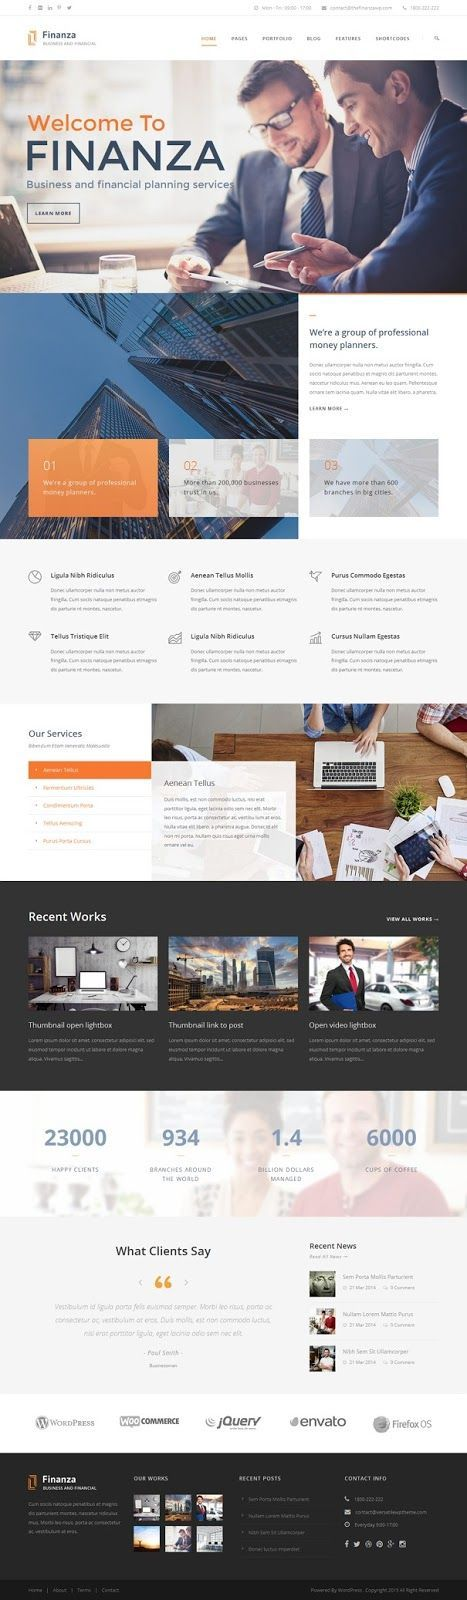 Top 10 Best New Premium WordPress Themes August #business #corporate #webdesign Download Now➝ http://www.downloadnewthemes.com/2015/09/top-10-best-new-premium-wordpress.html